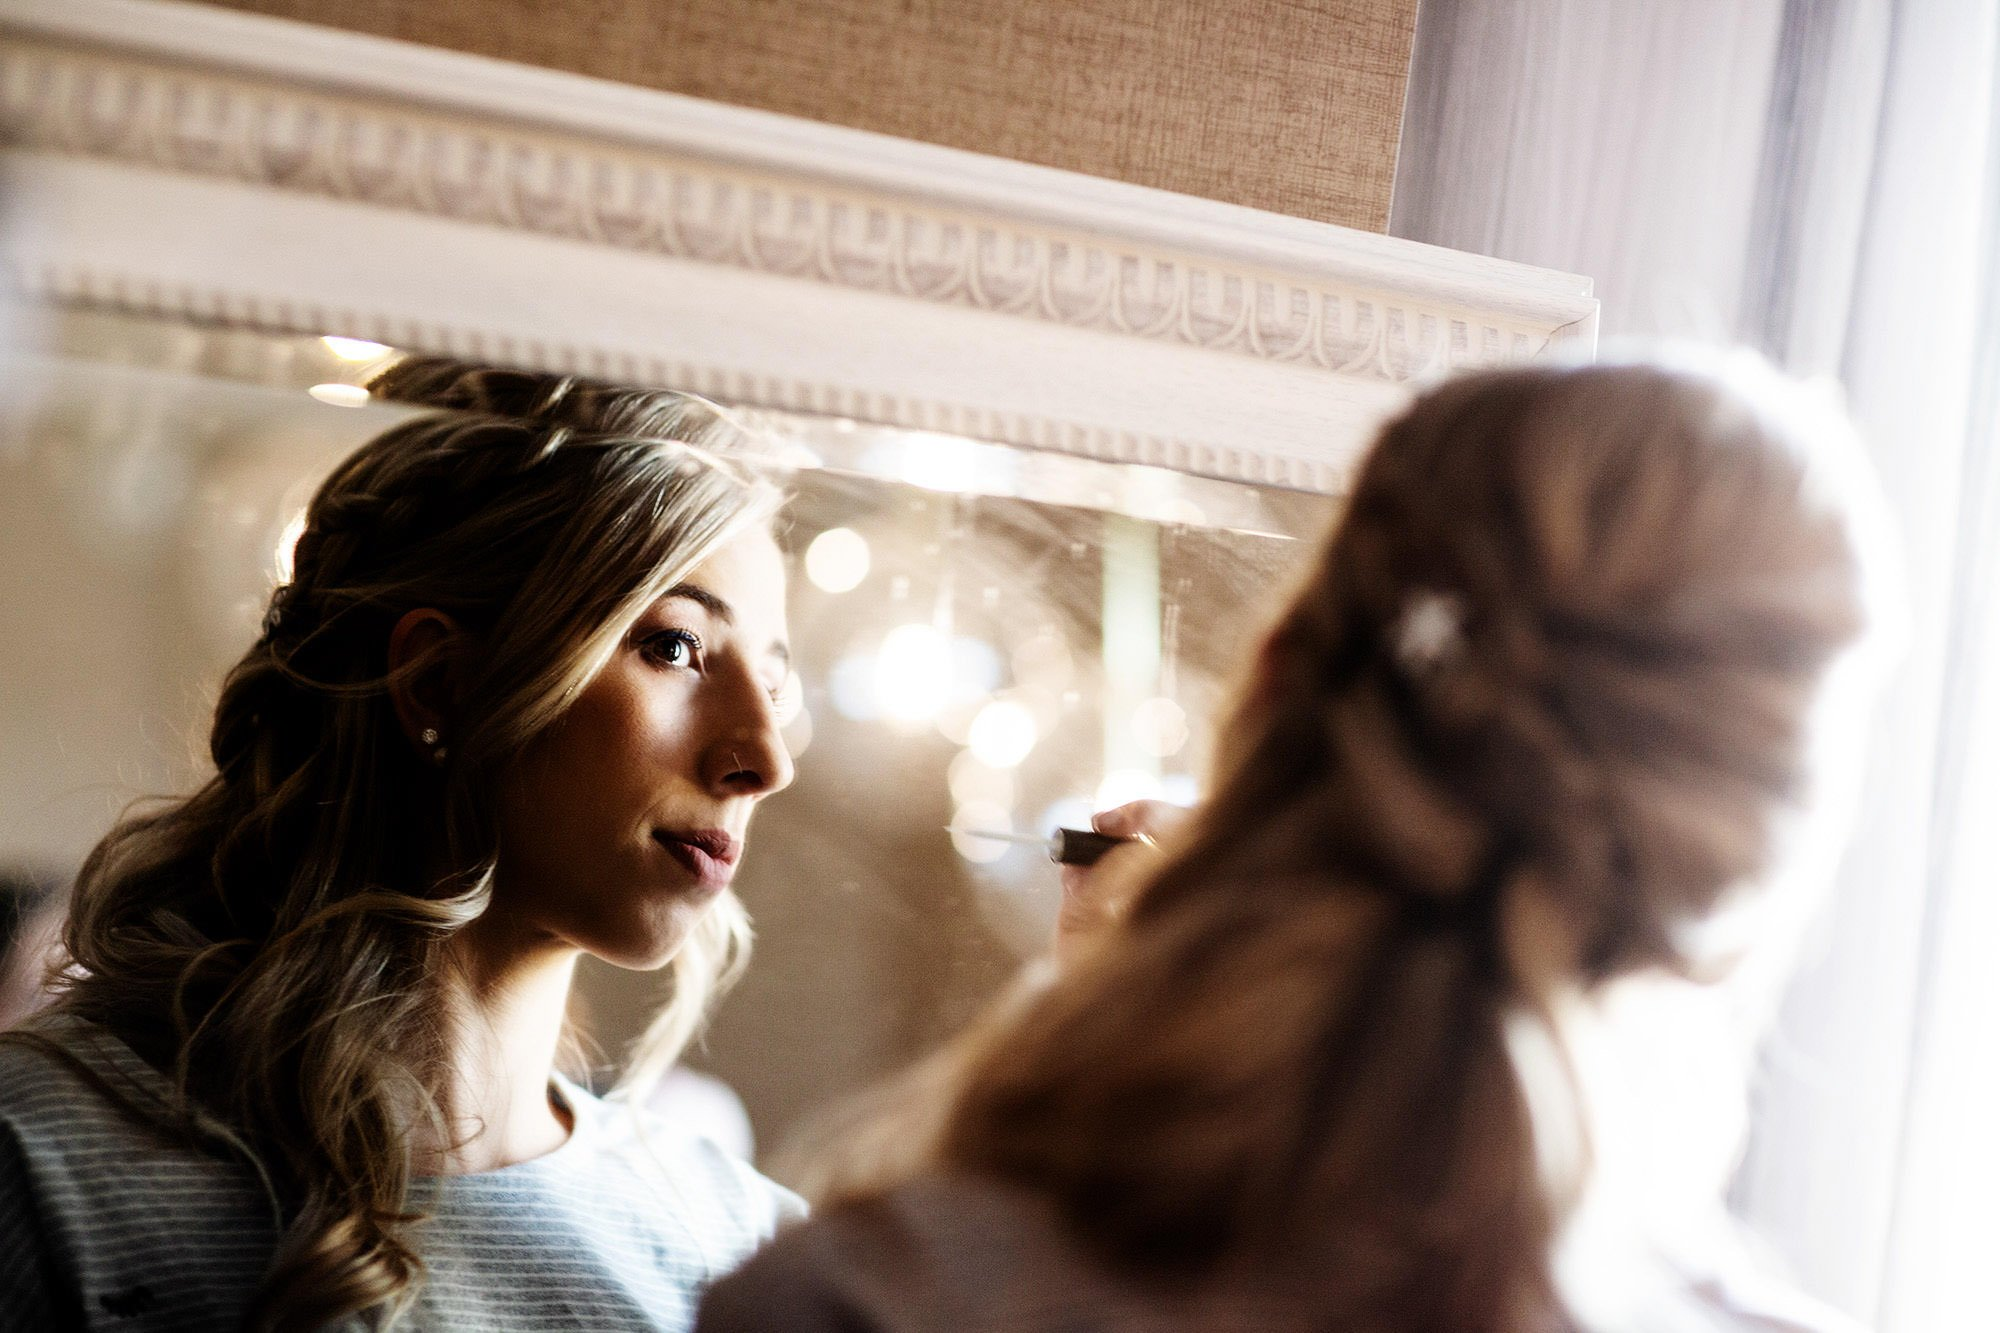 A bridesmaid puts on her makeup.